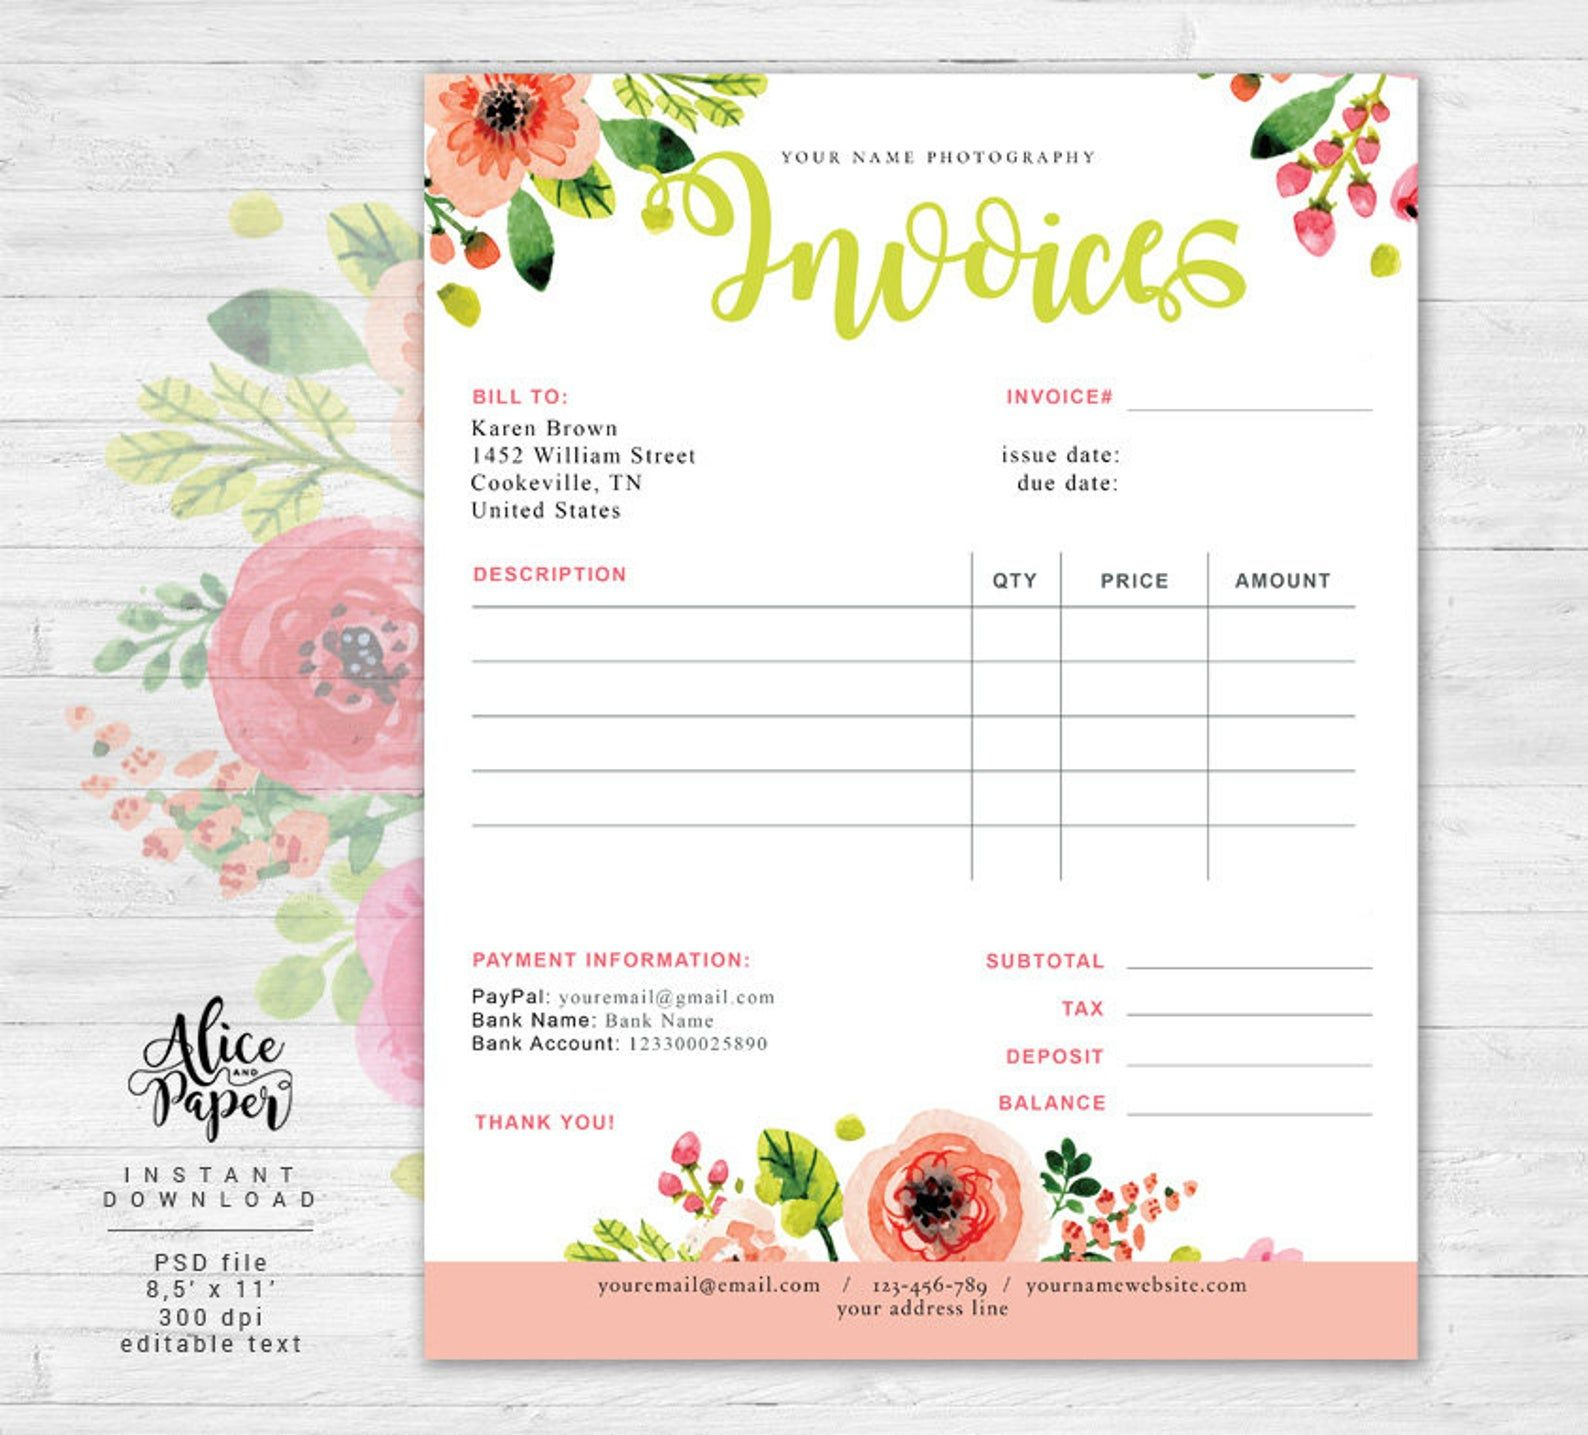 Invoice Template Photography Invoice Business Invoice Etsy Photography Invoice Photography Invoice Template Invoice Template